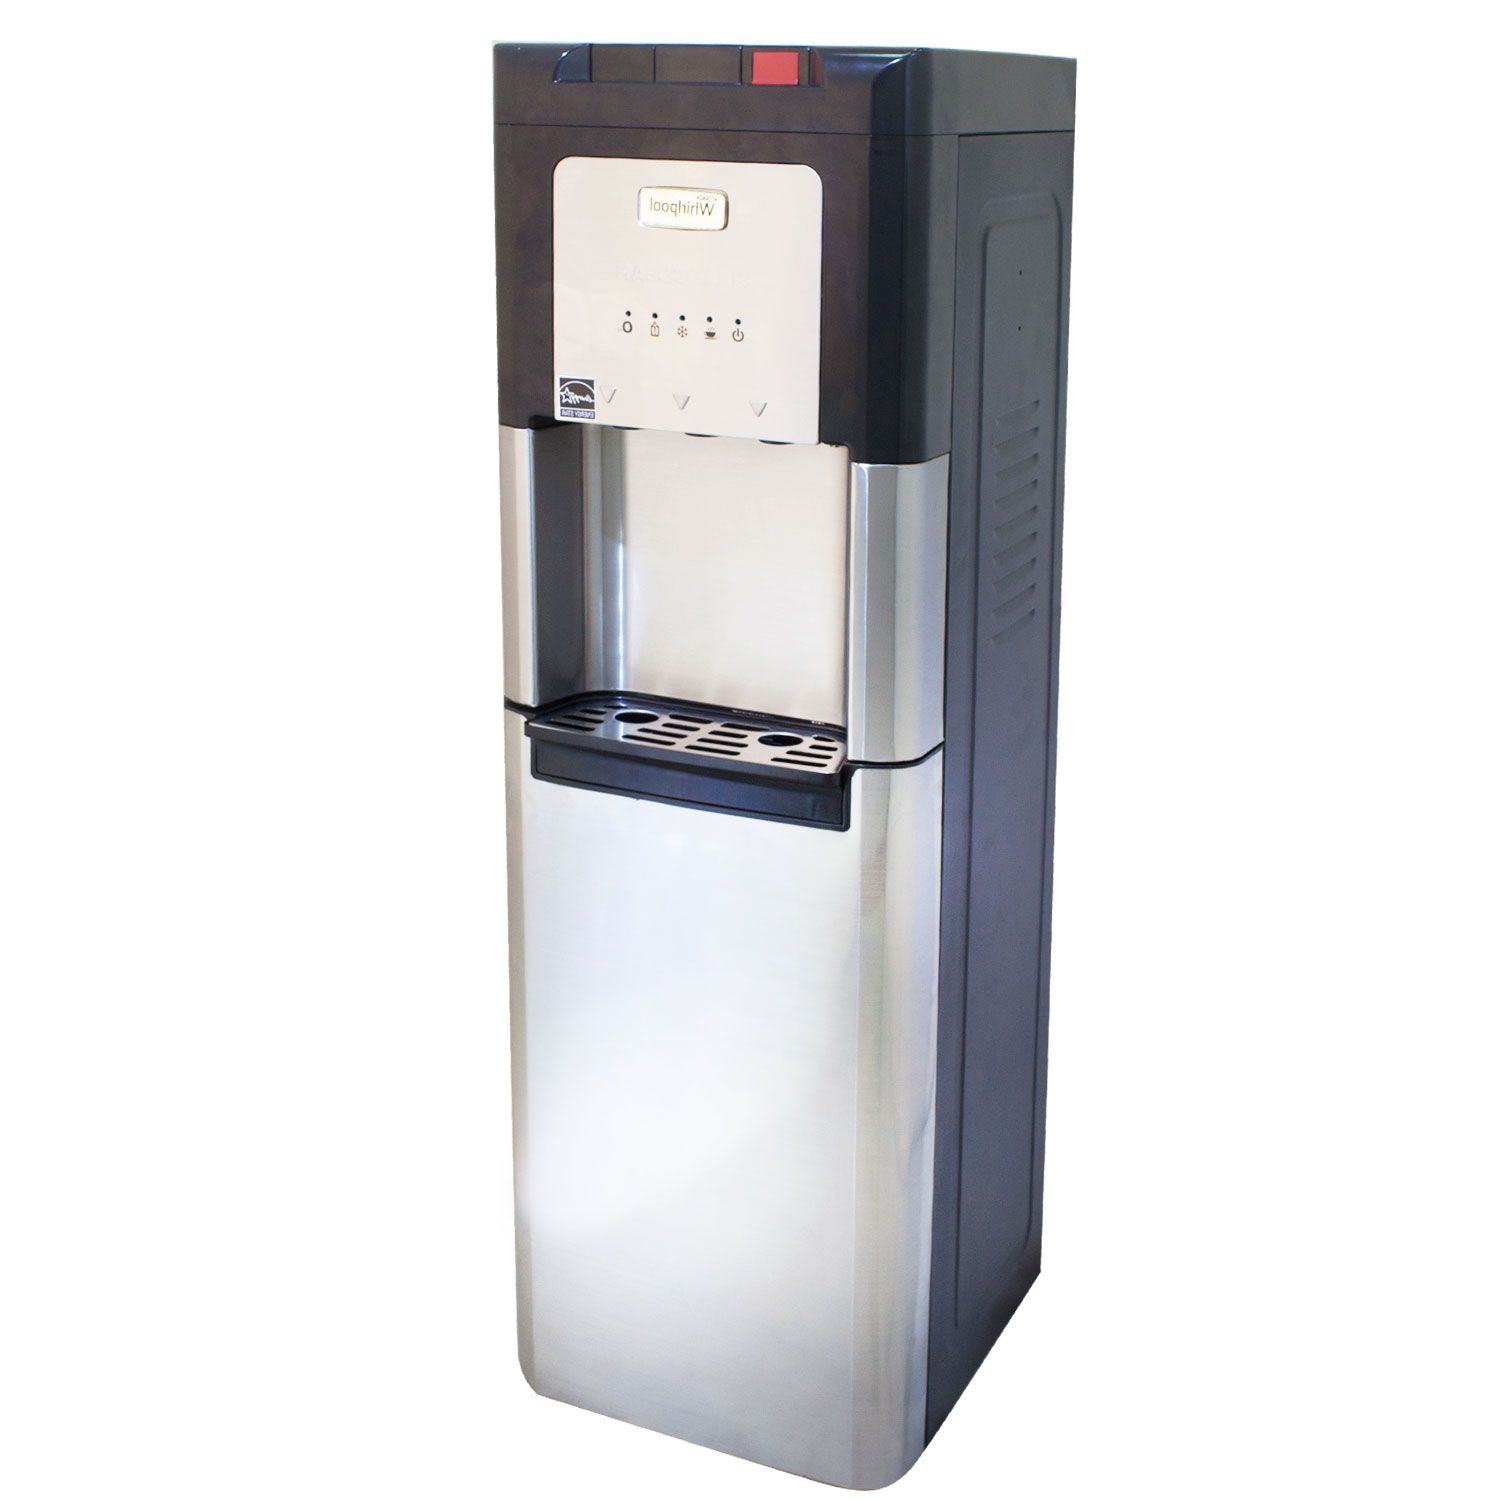 Whirlpool Automatic Self Cleaning Hidden Bottle Water Cooler, Stainless Steel at Sears.com